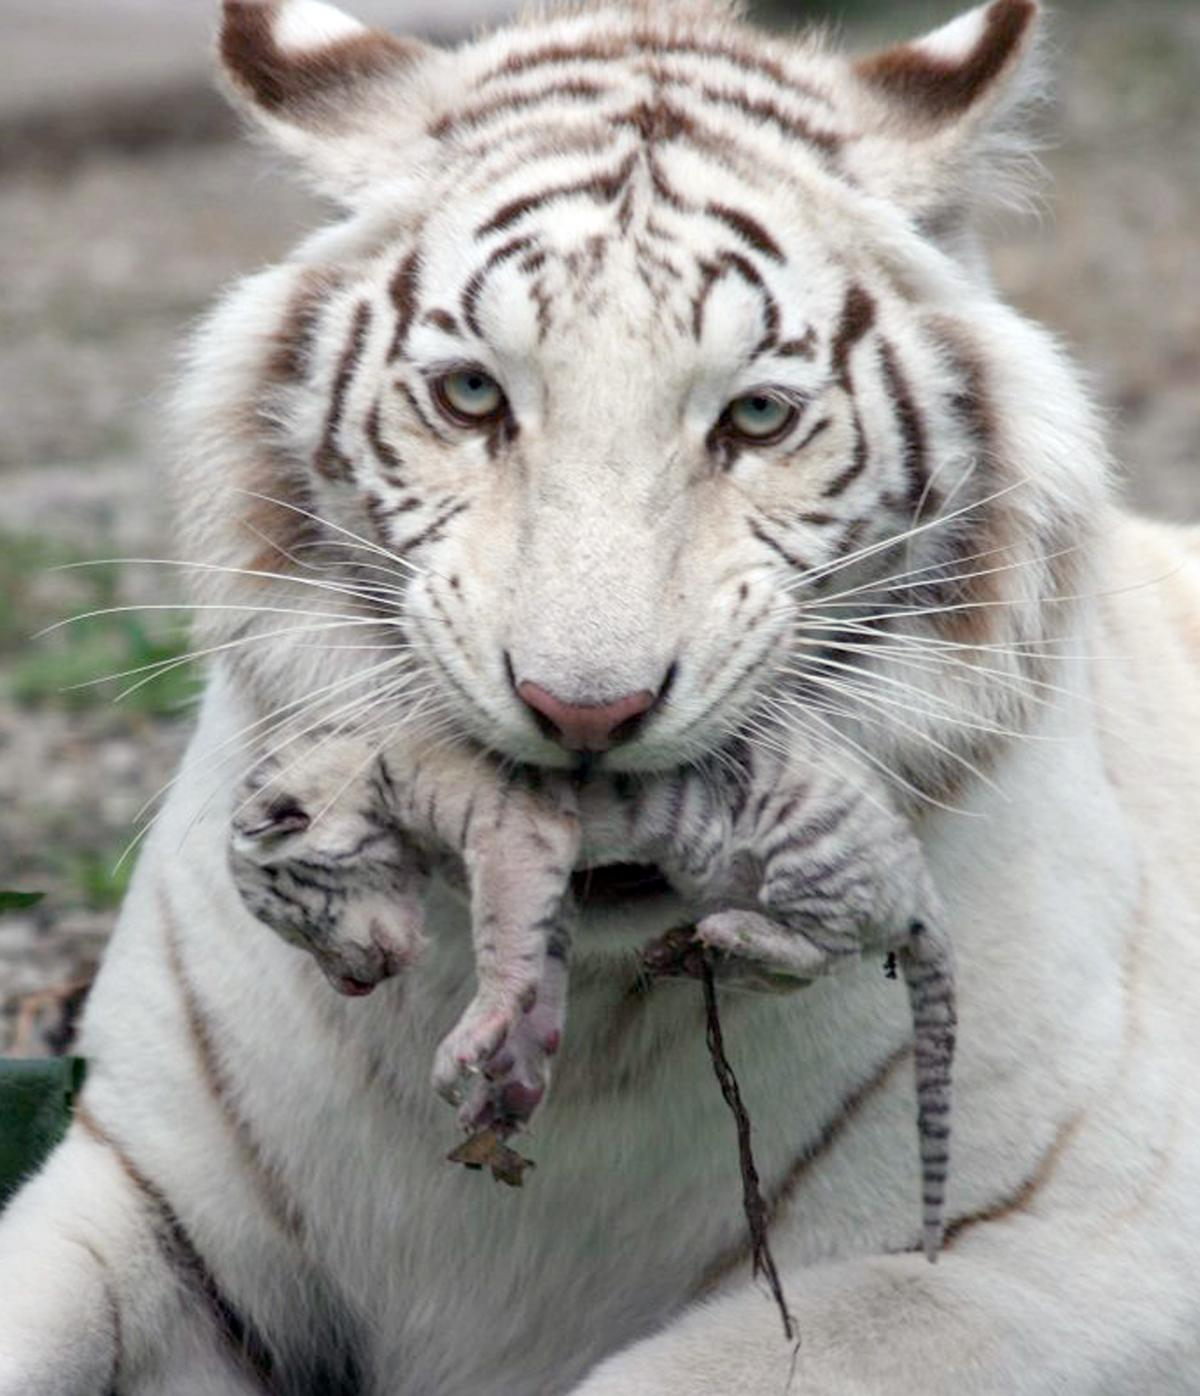 baby white tigers in wat hd wallpaper, background images